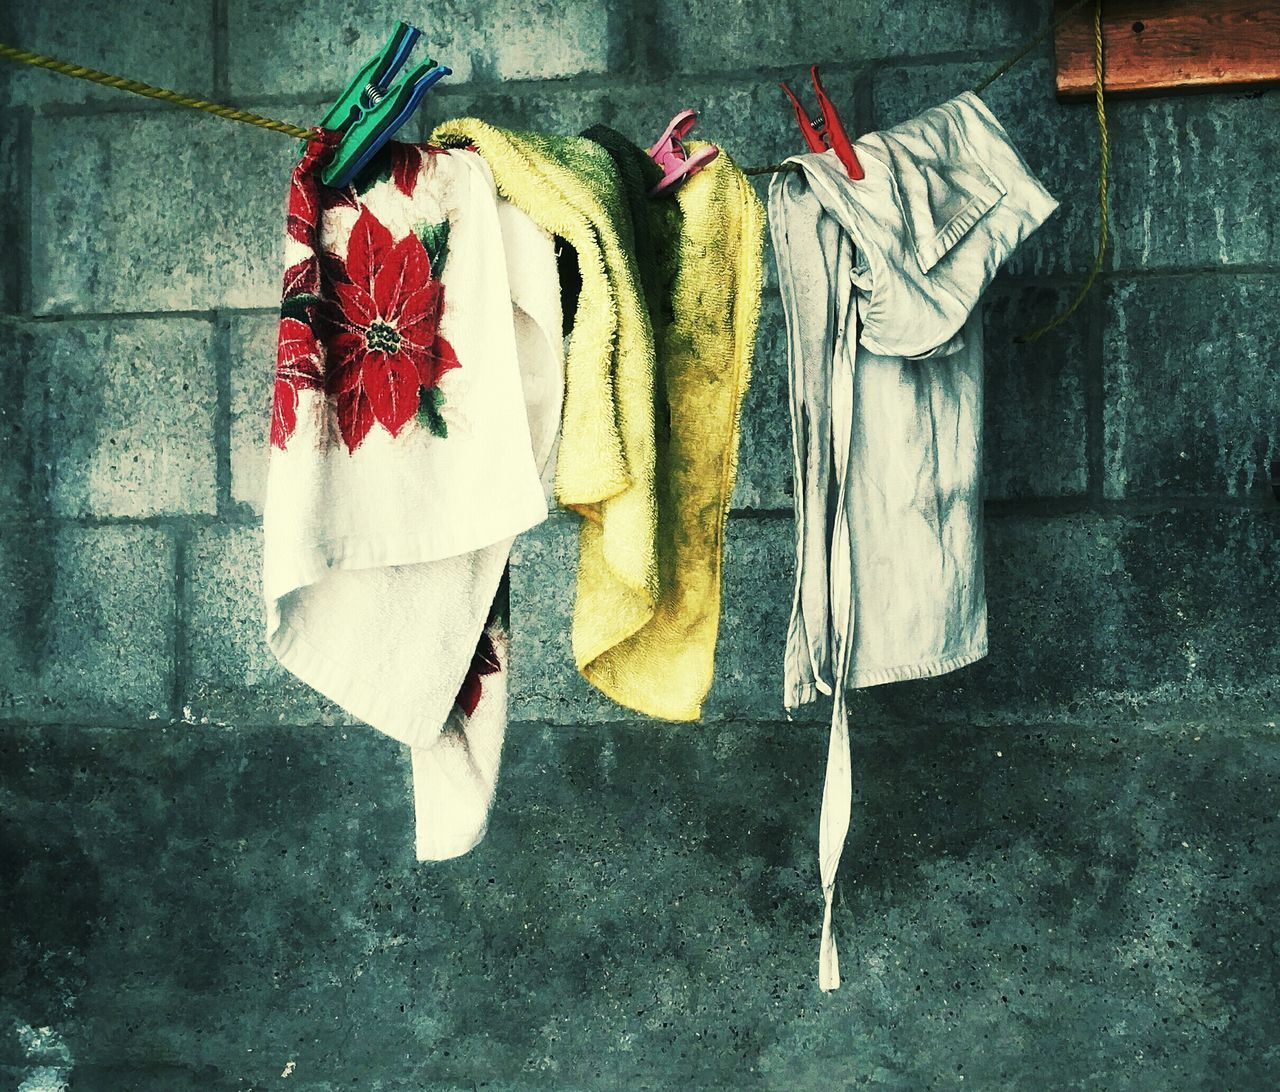 hanging, clothing, clothesline, laundry, drying, no people, day, clothespin, cloth, outdoors